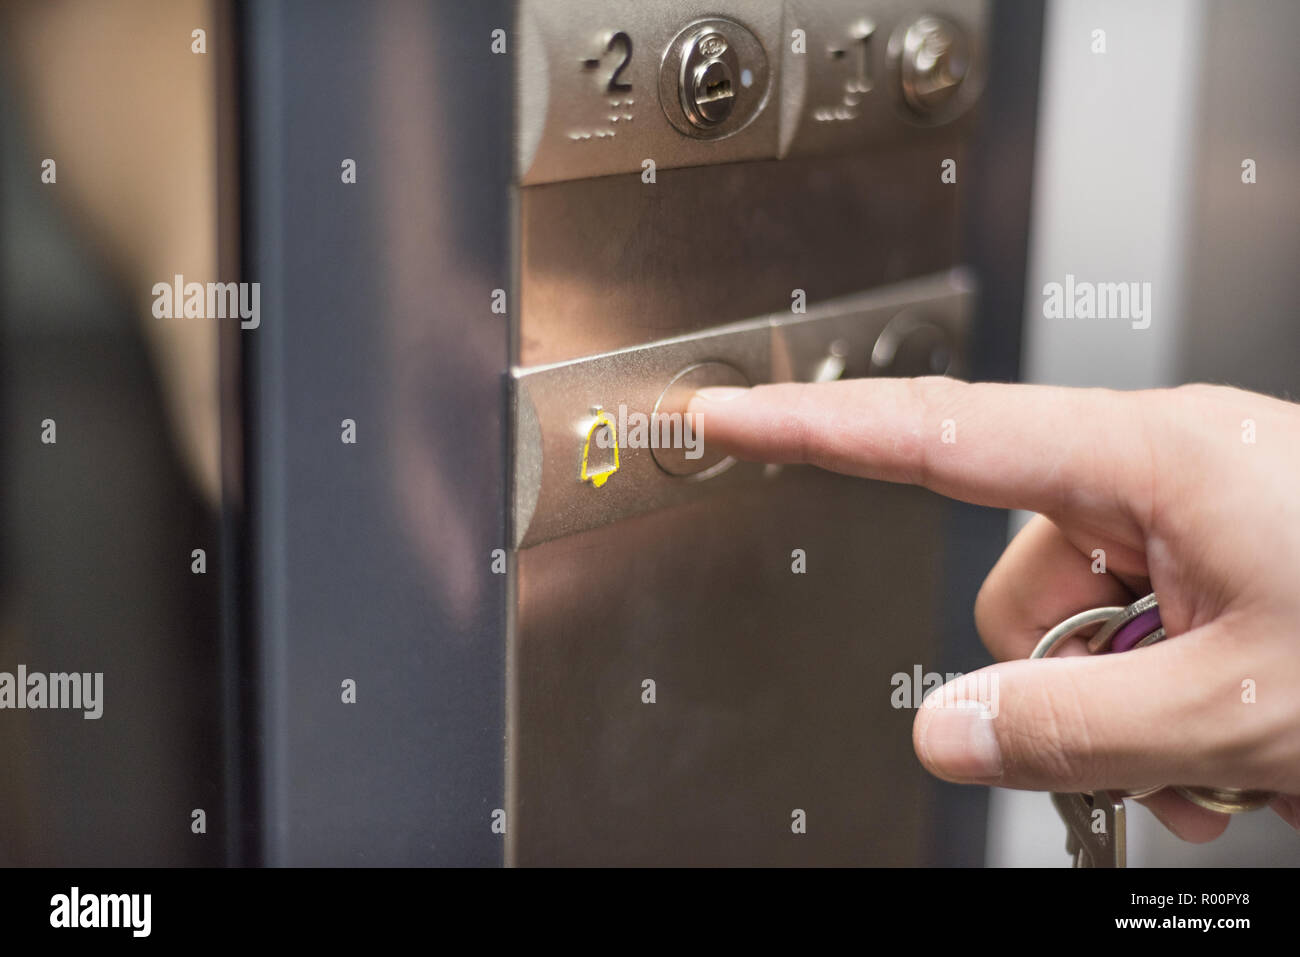 Pressing the alarm button in the elevator - Stock Image